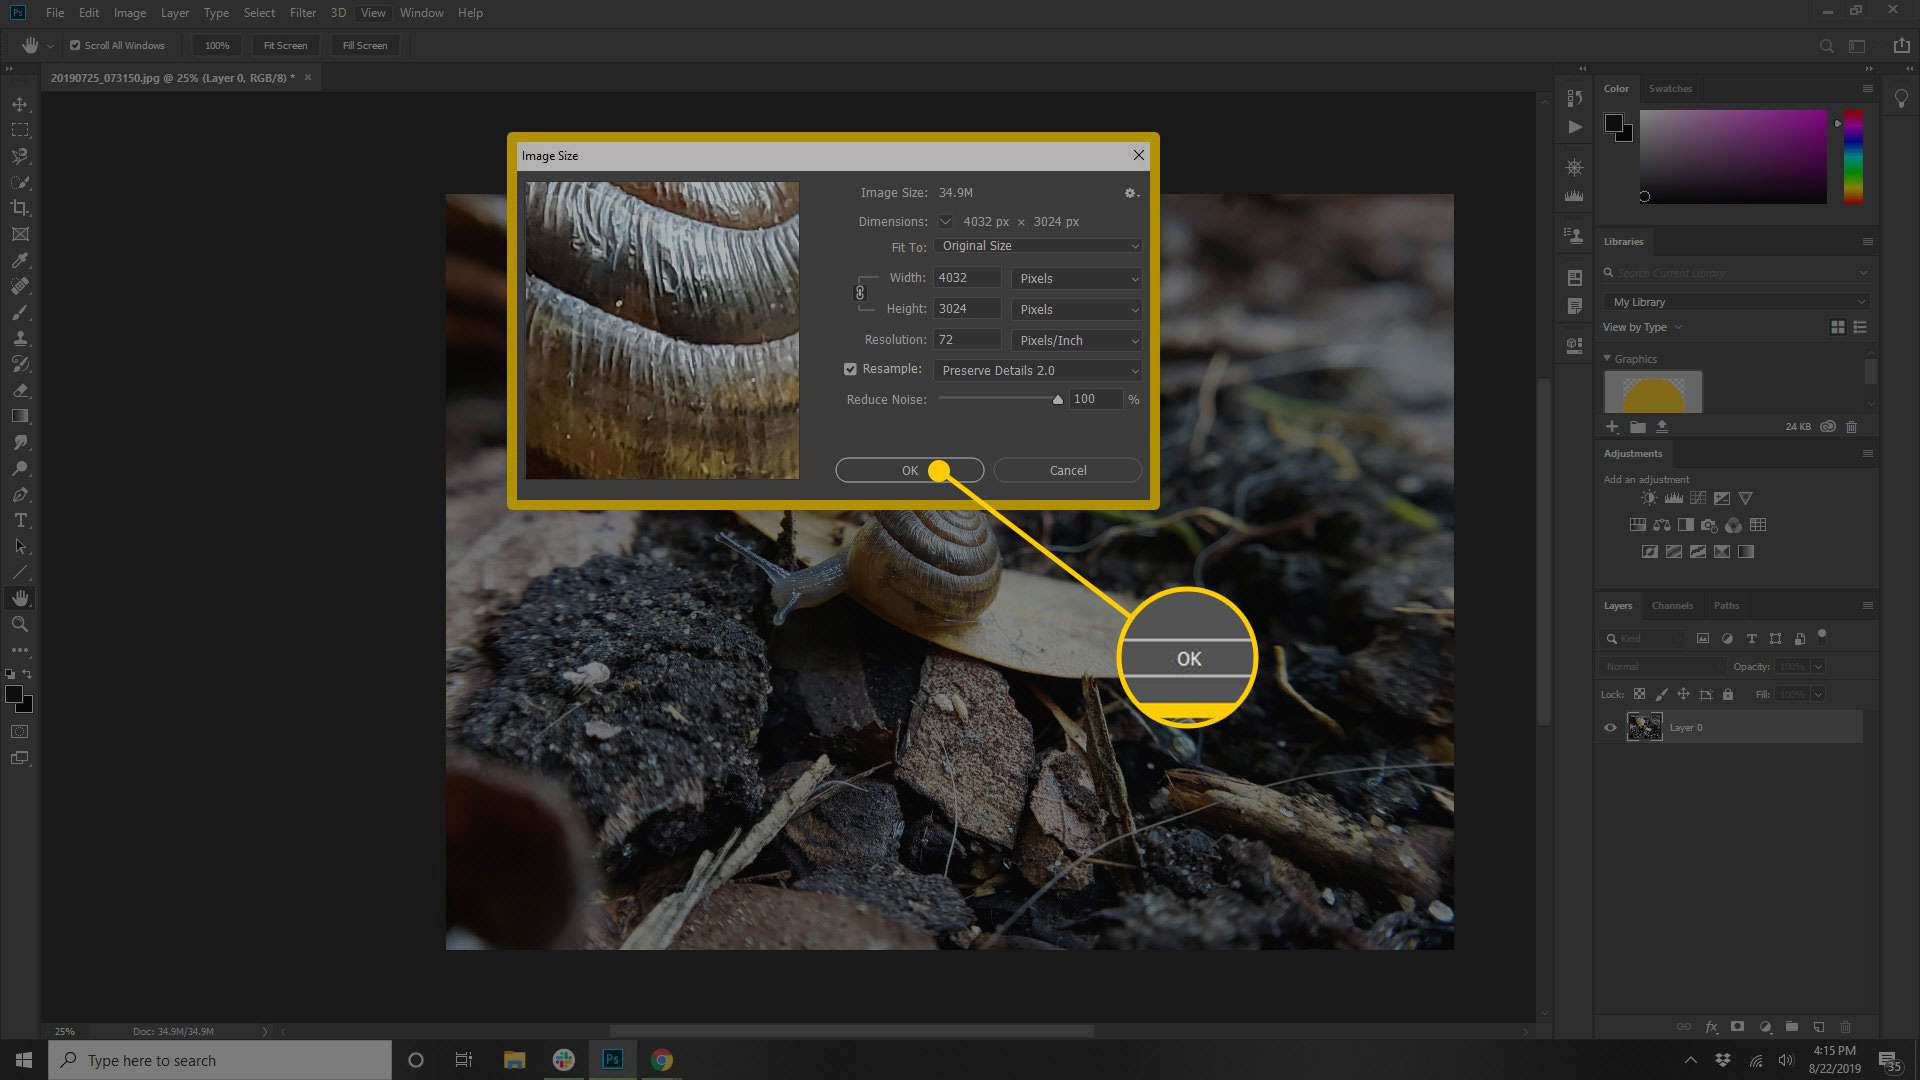 Image Size window in Photoshop with the OK button highlighted